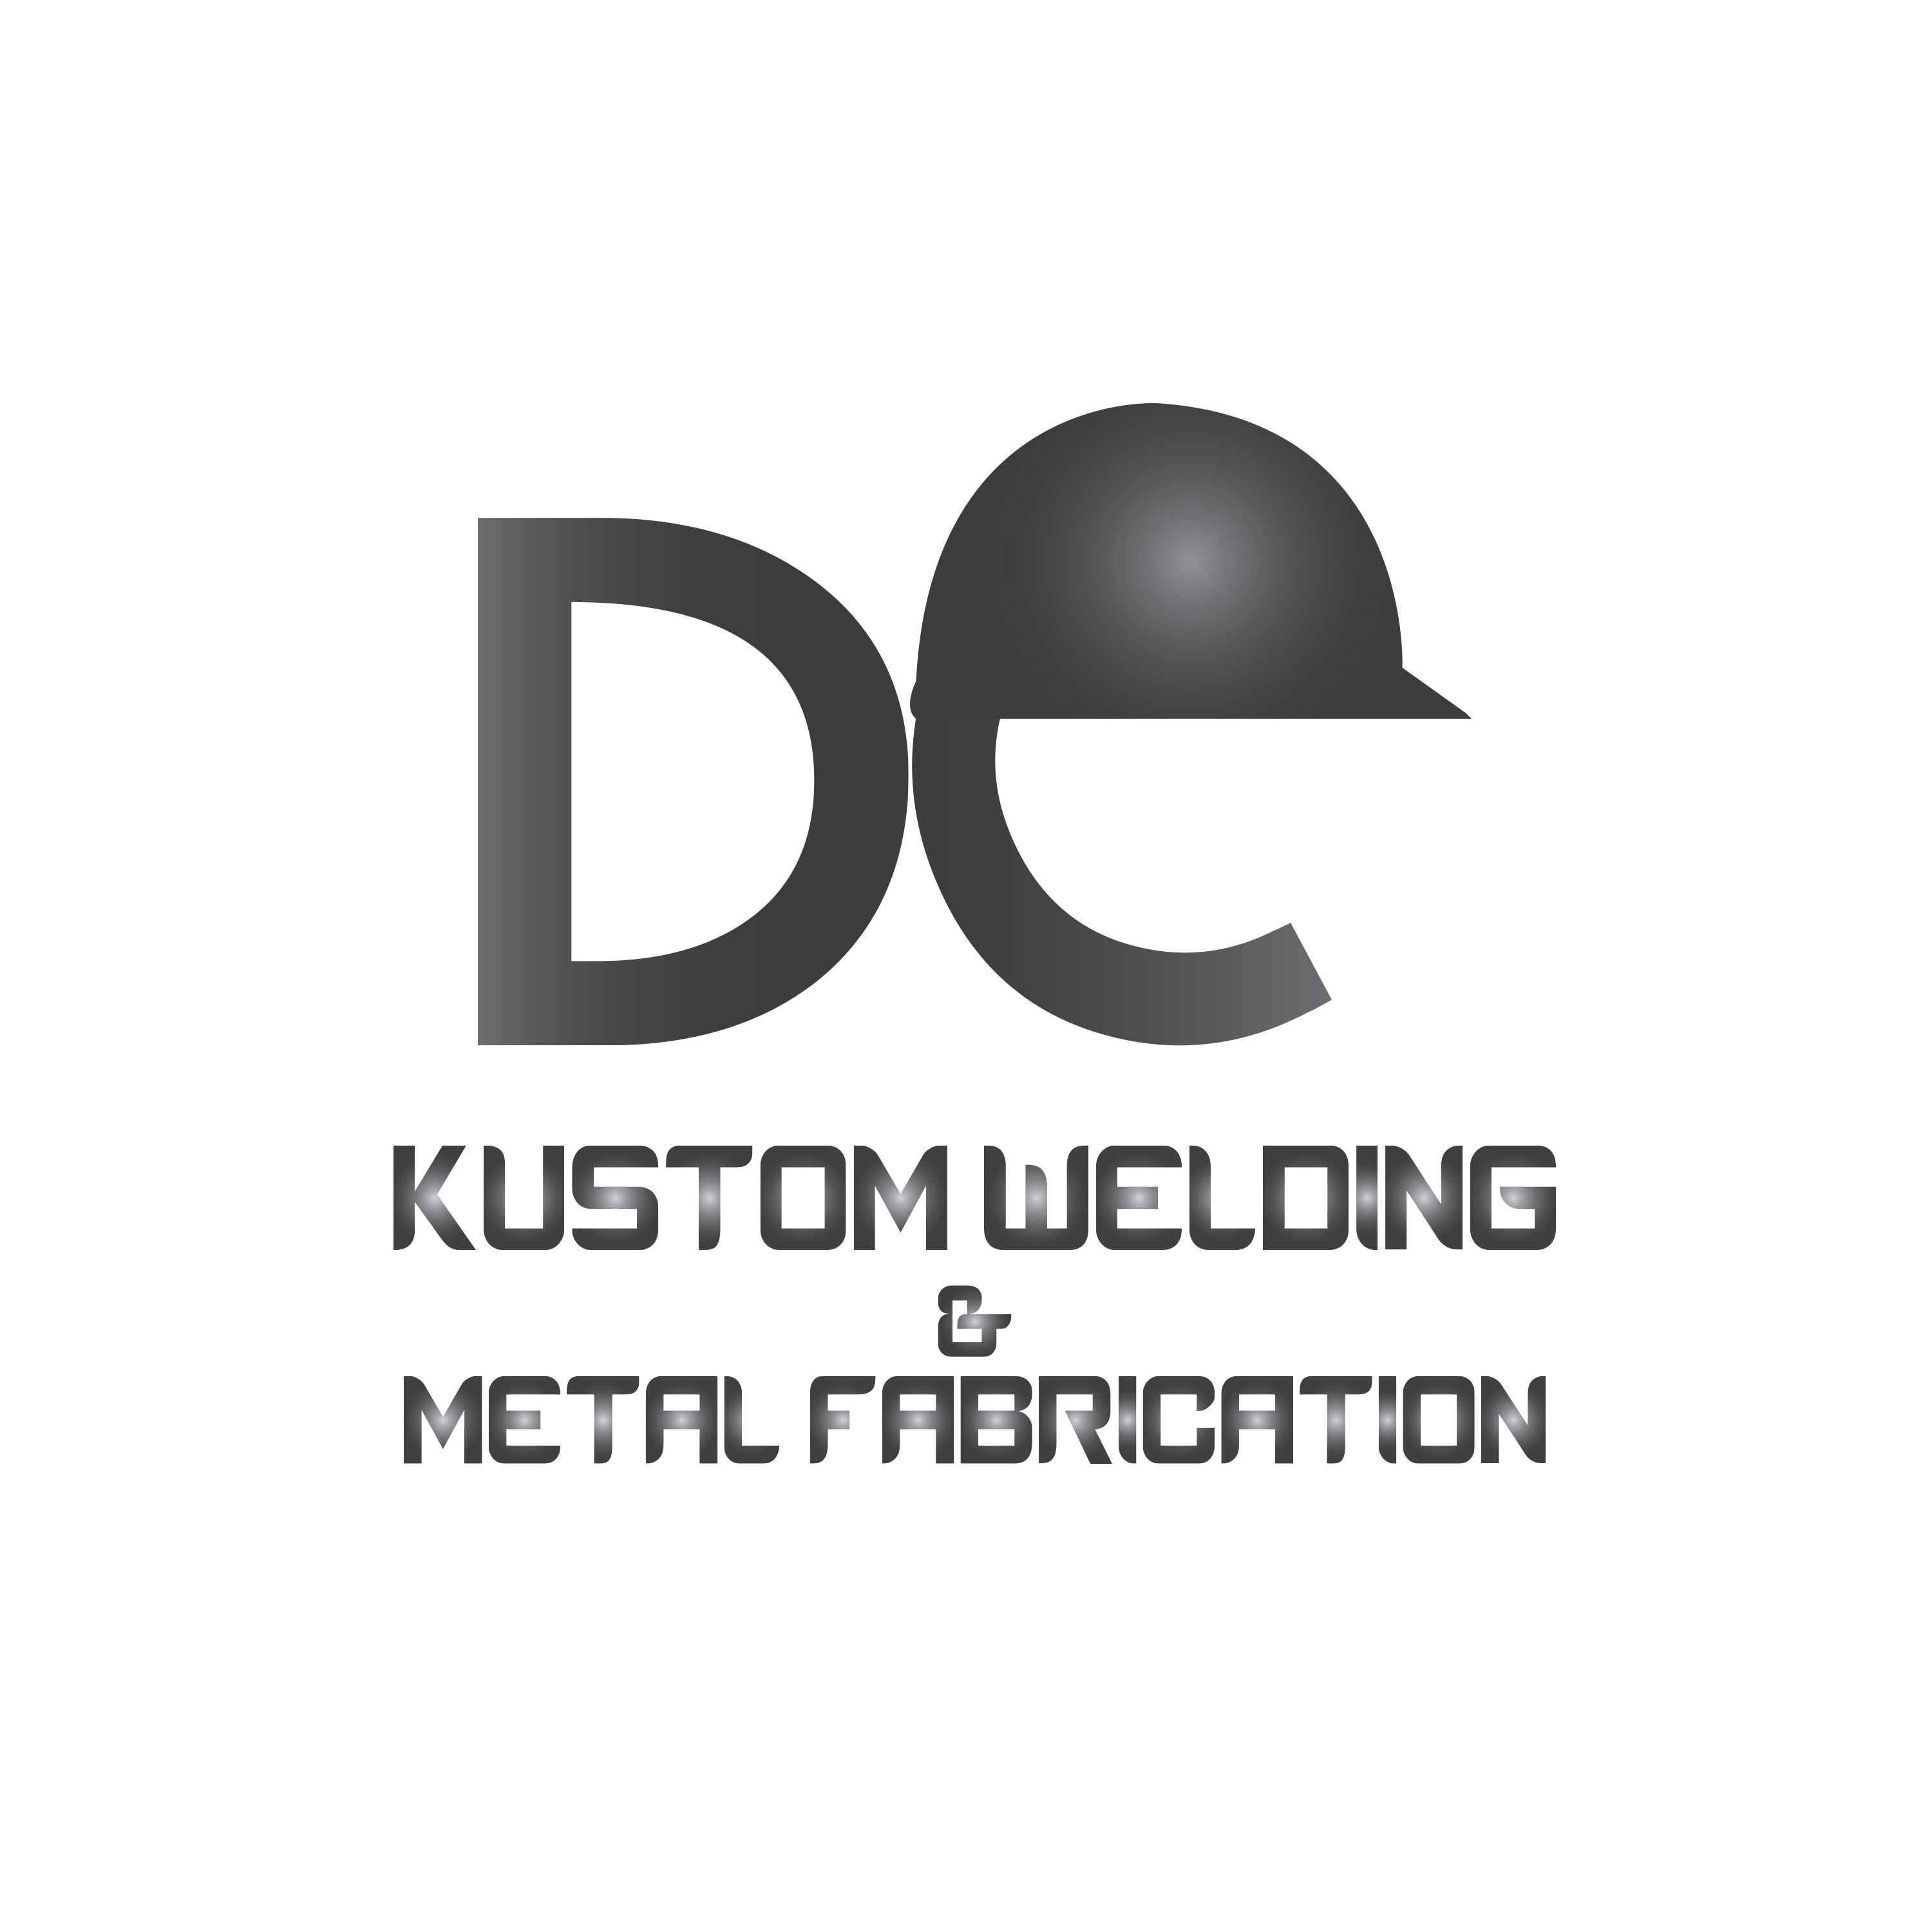 Logo Design by Aehab Asghar - Entry No. 28 in the Logo Design Contest Imaginative Logo Design for DC KUSTOM WELDING & METAL FABRICATION.